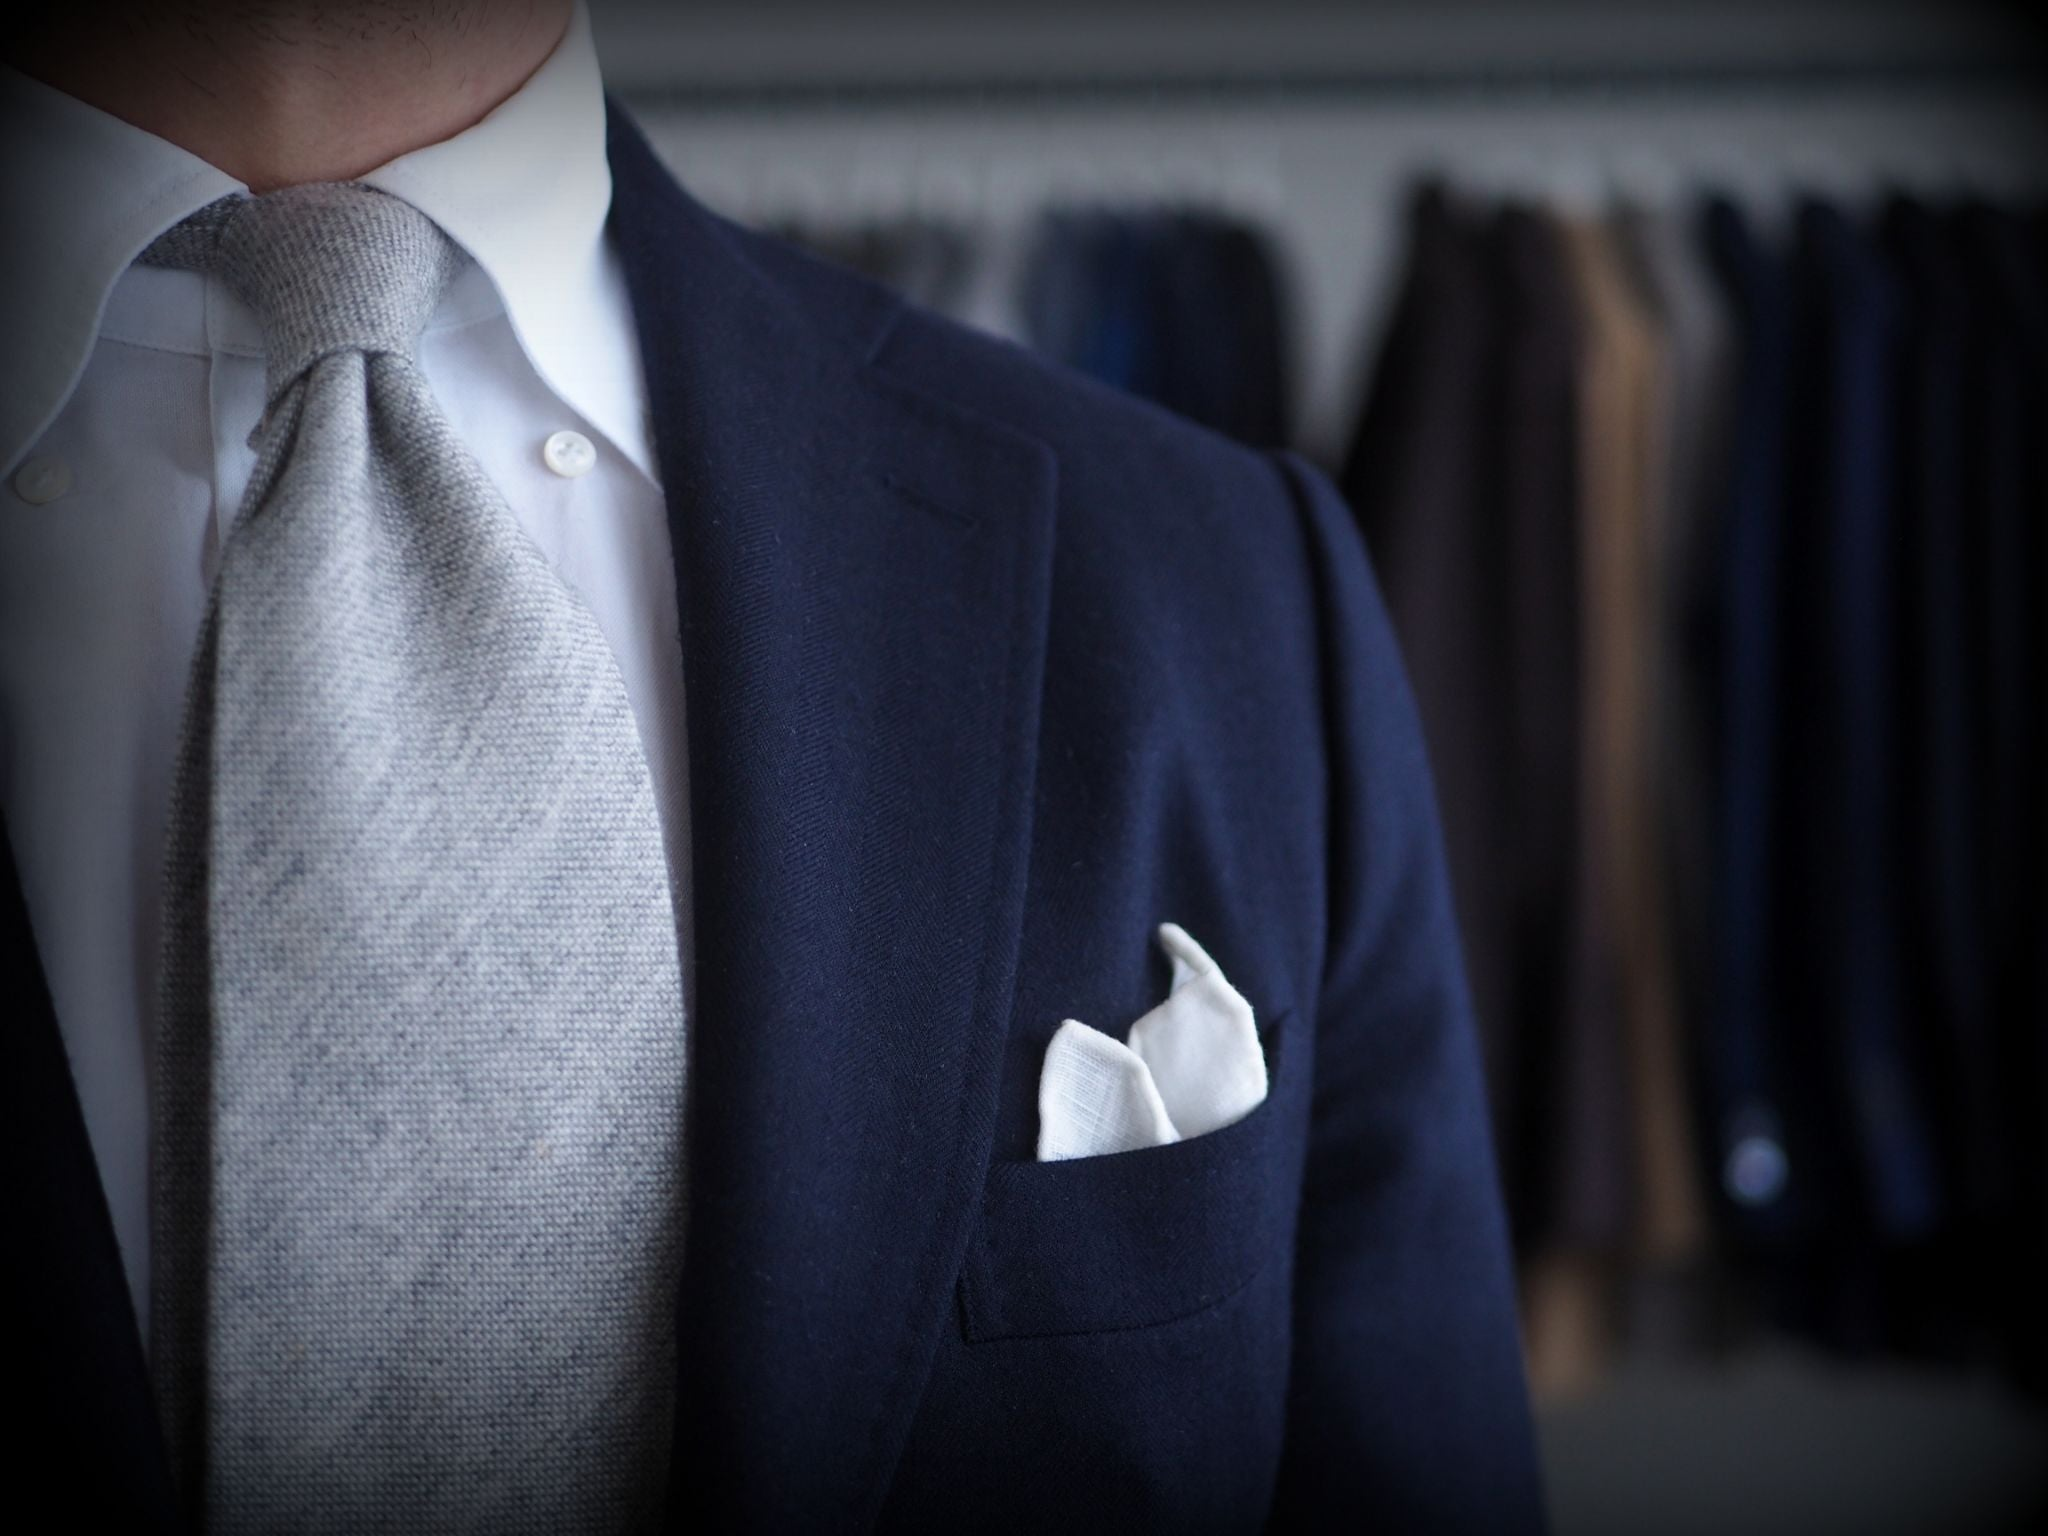 Classic combinations for men - navy blue suit with gray cashmere tie details